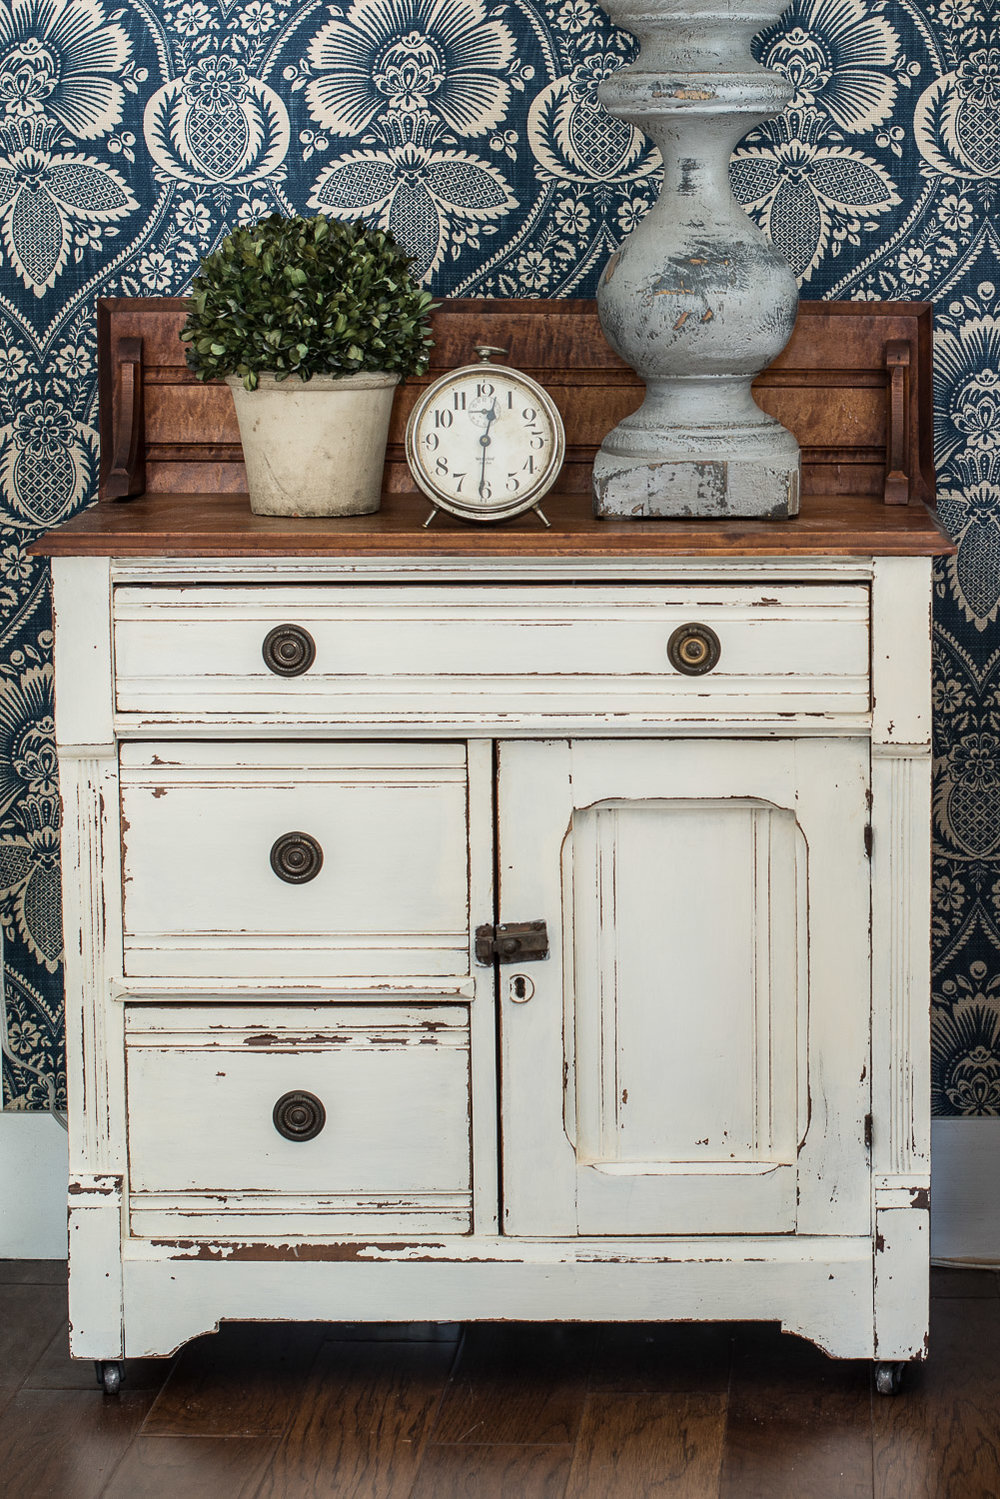 Buffet Painted In Miss Mustard Seed's Milk Paint in the Colour Linen